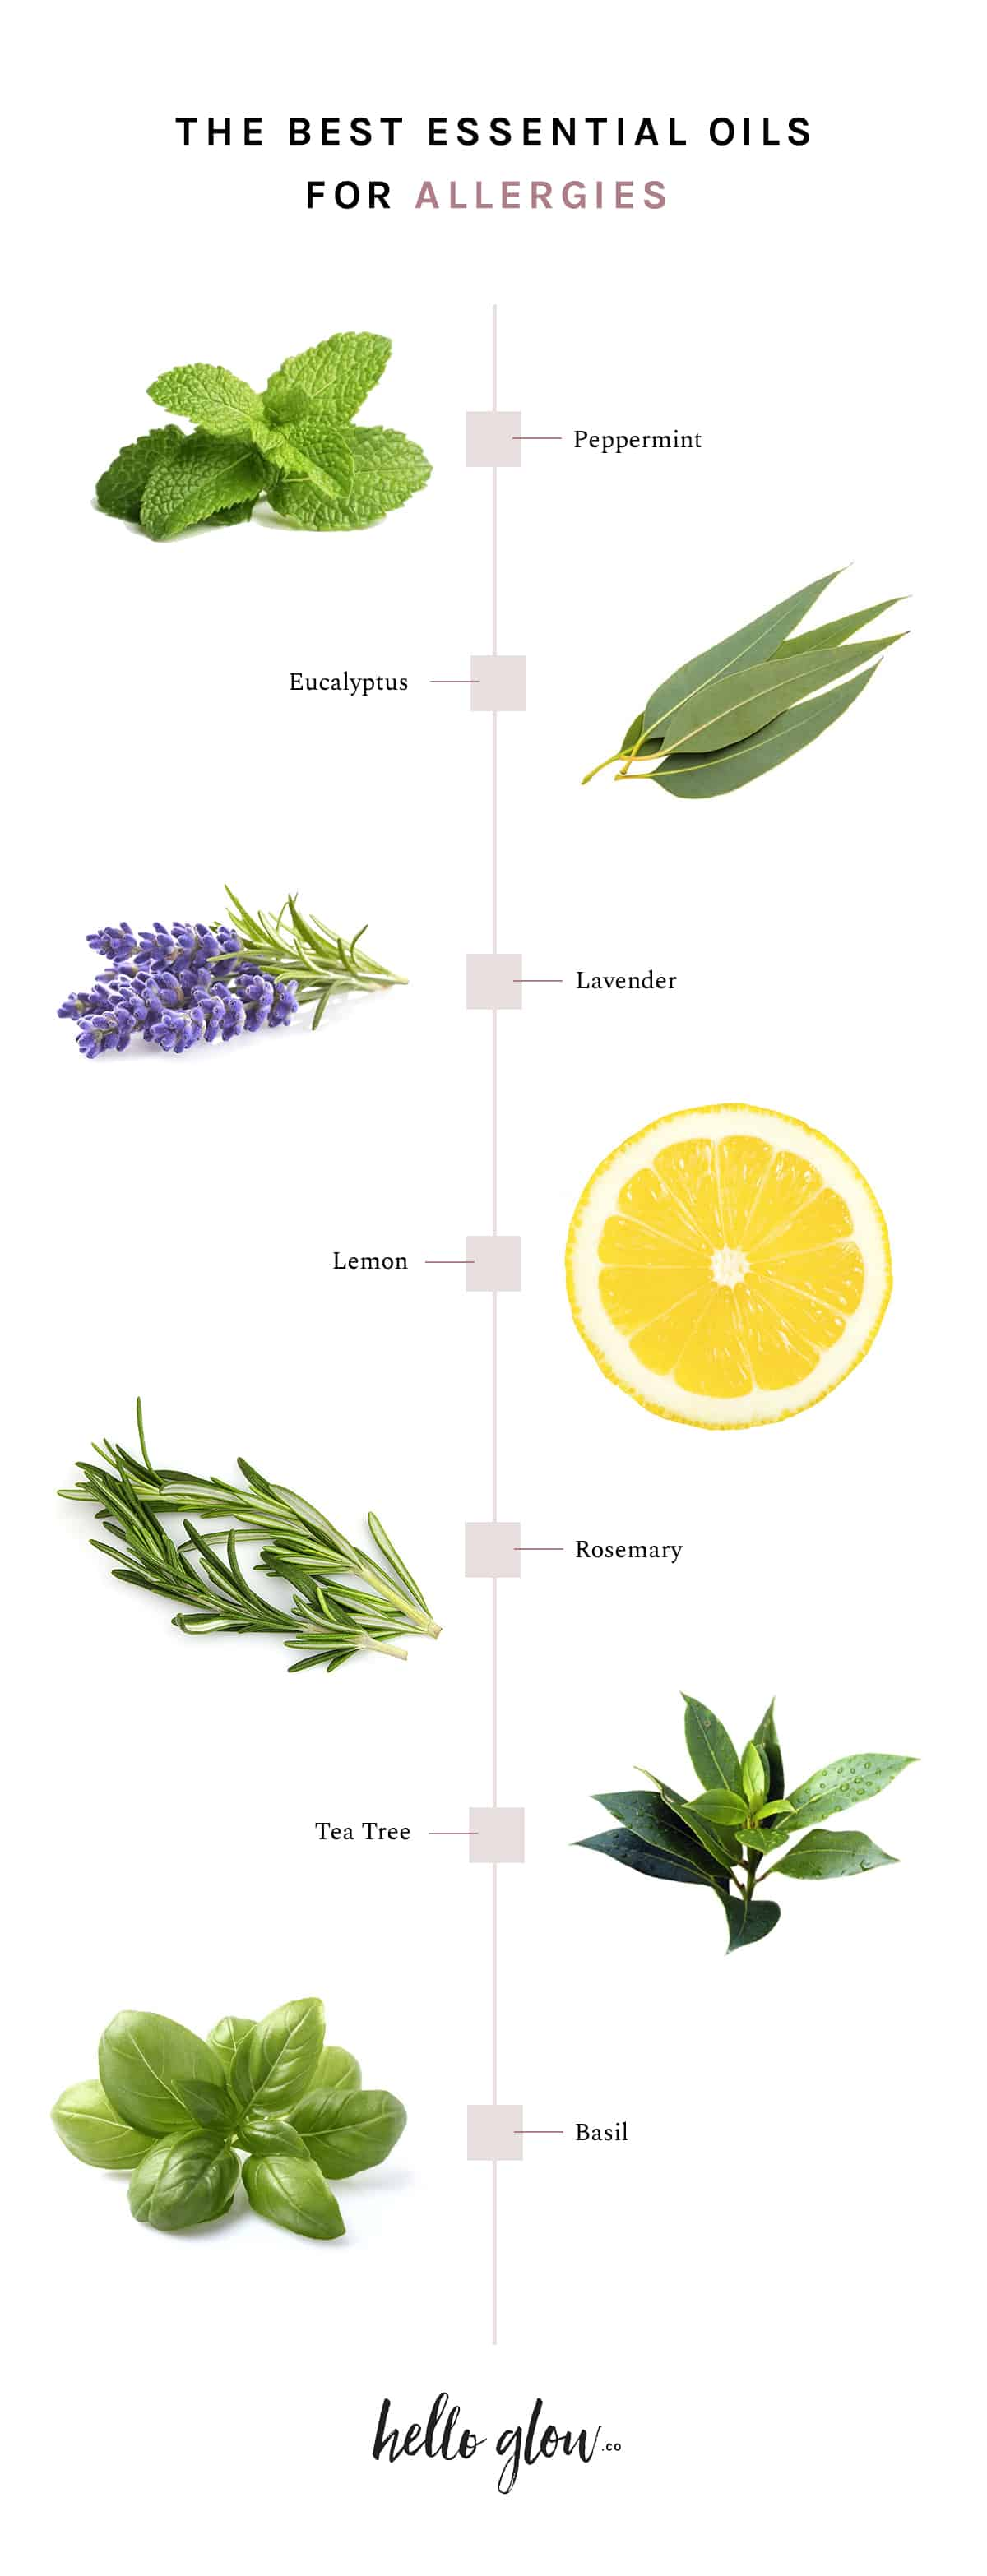 Best essential oils for allergies and how to use them